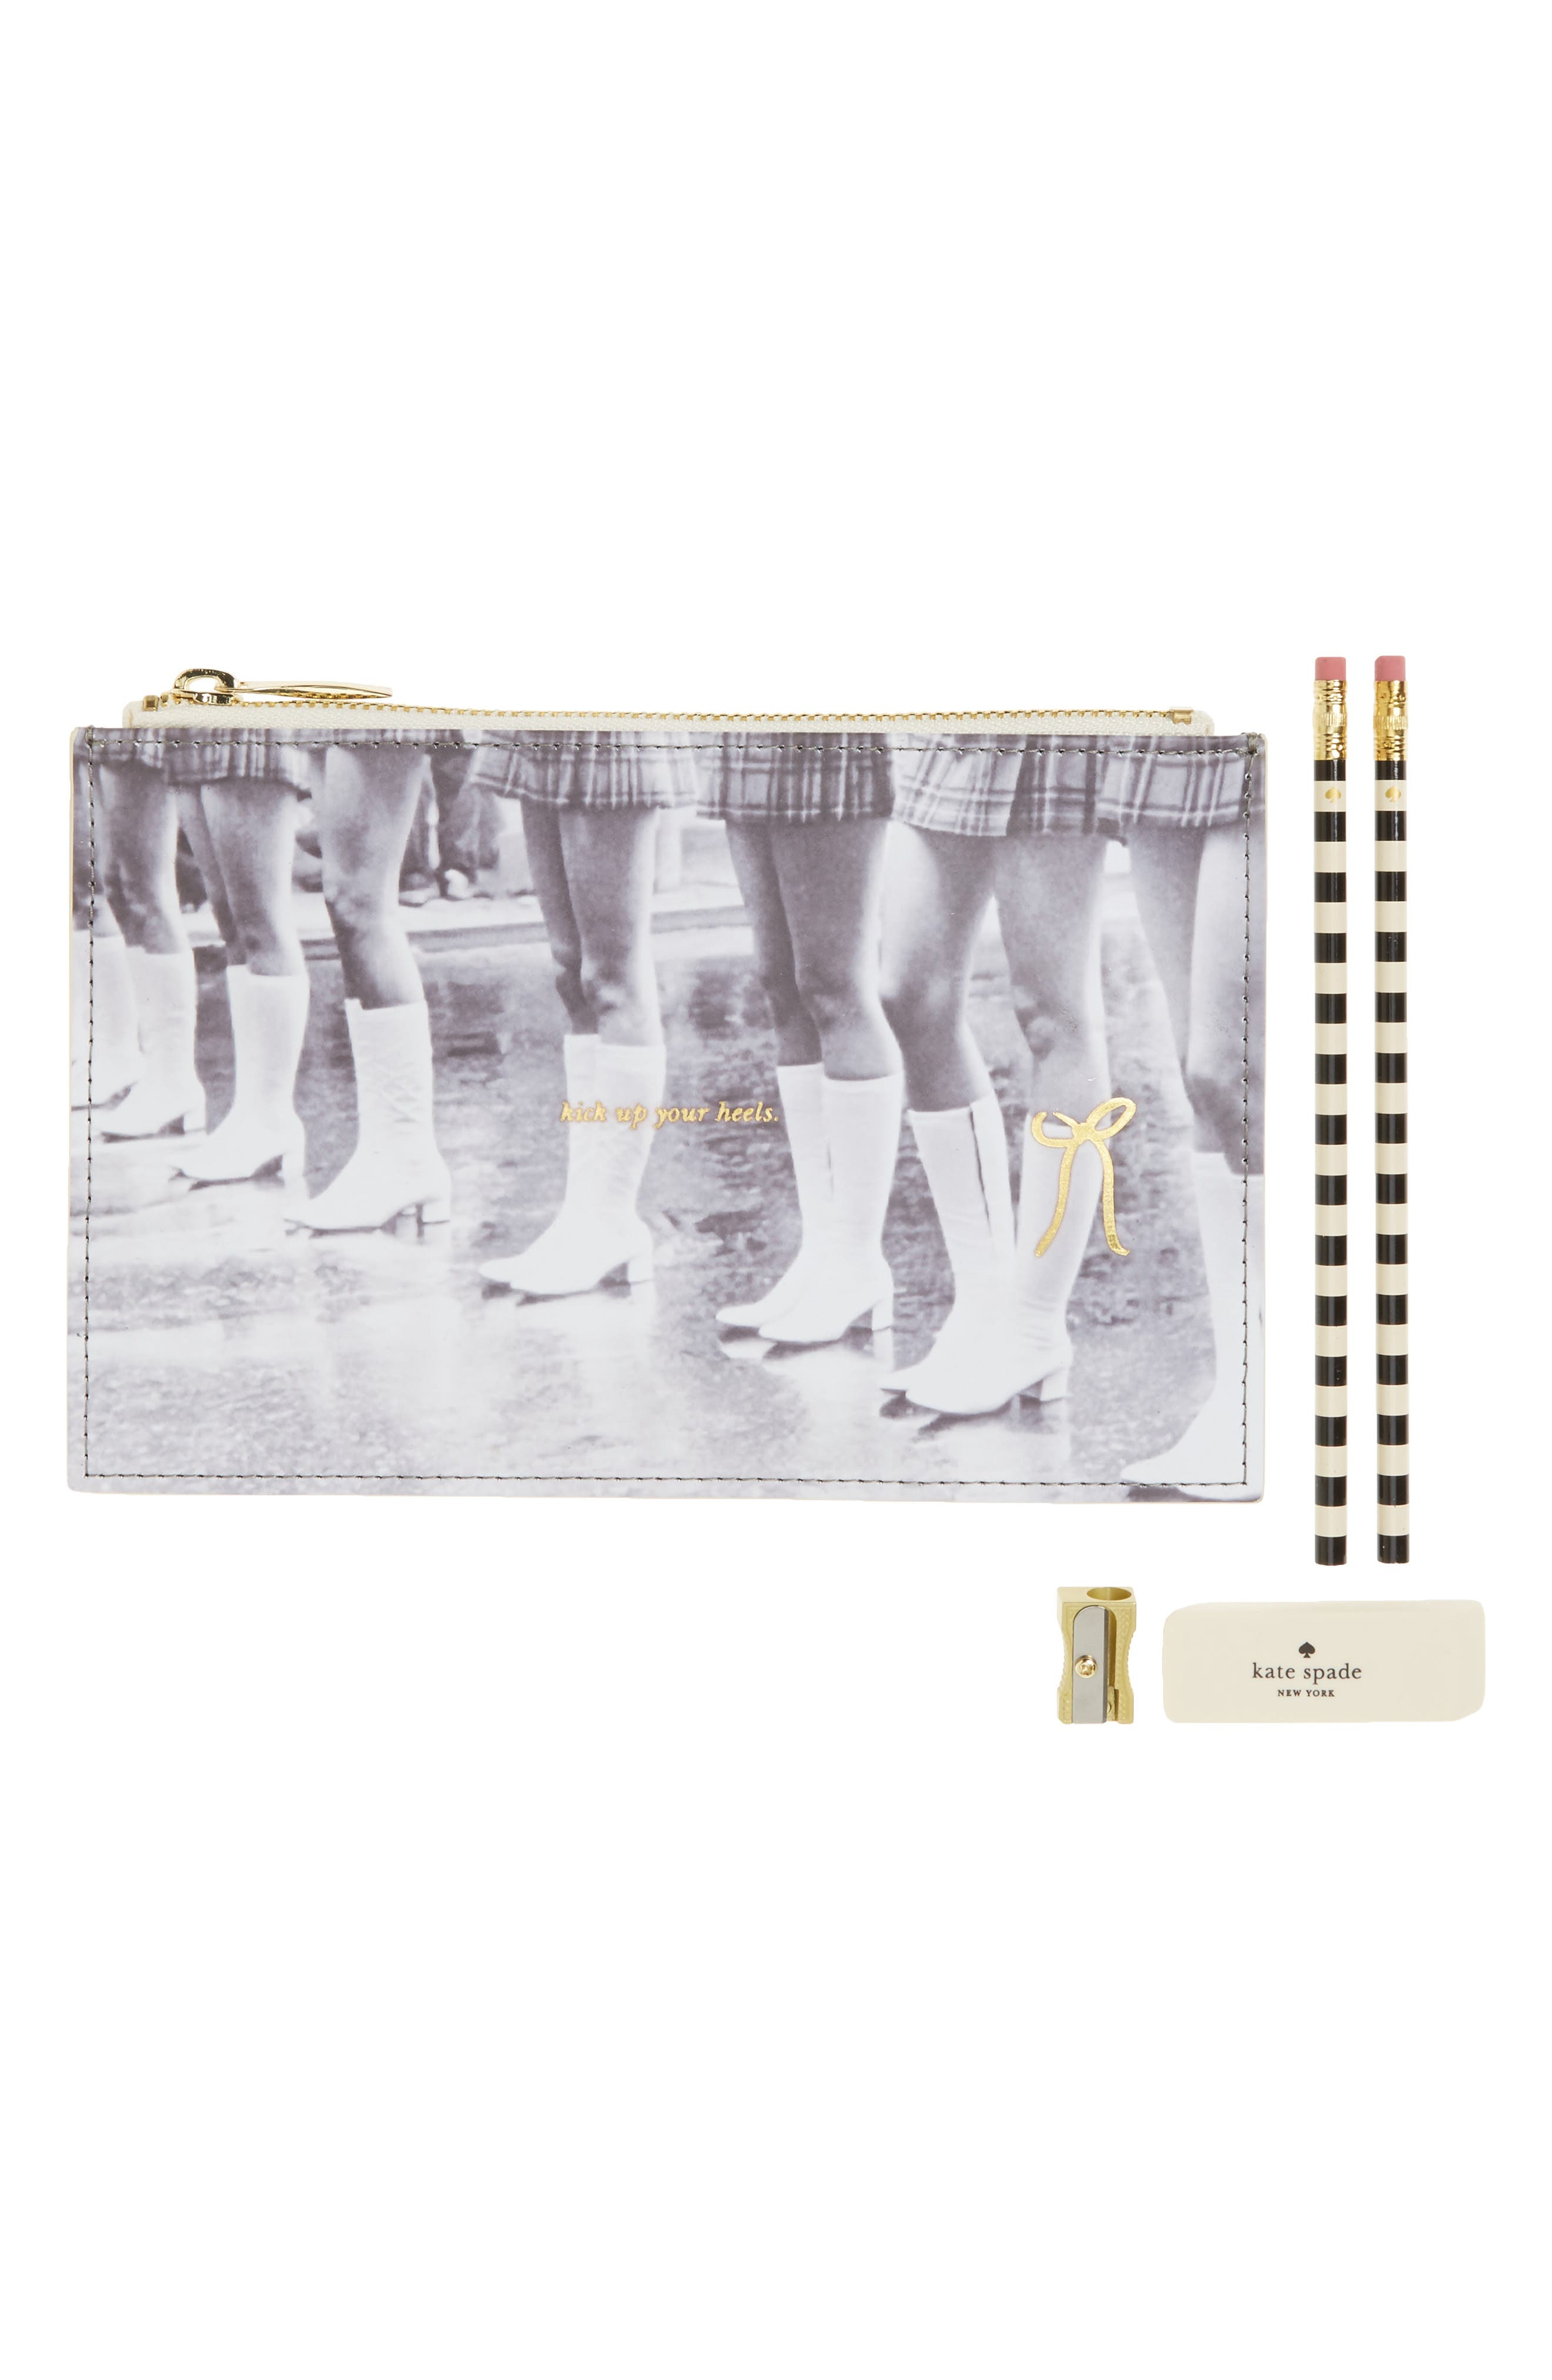 kate spade new york kick up your heels pencil pouch